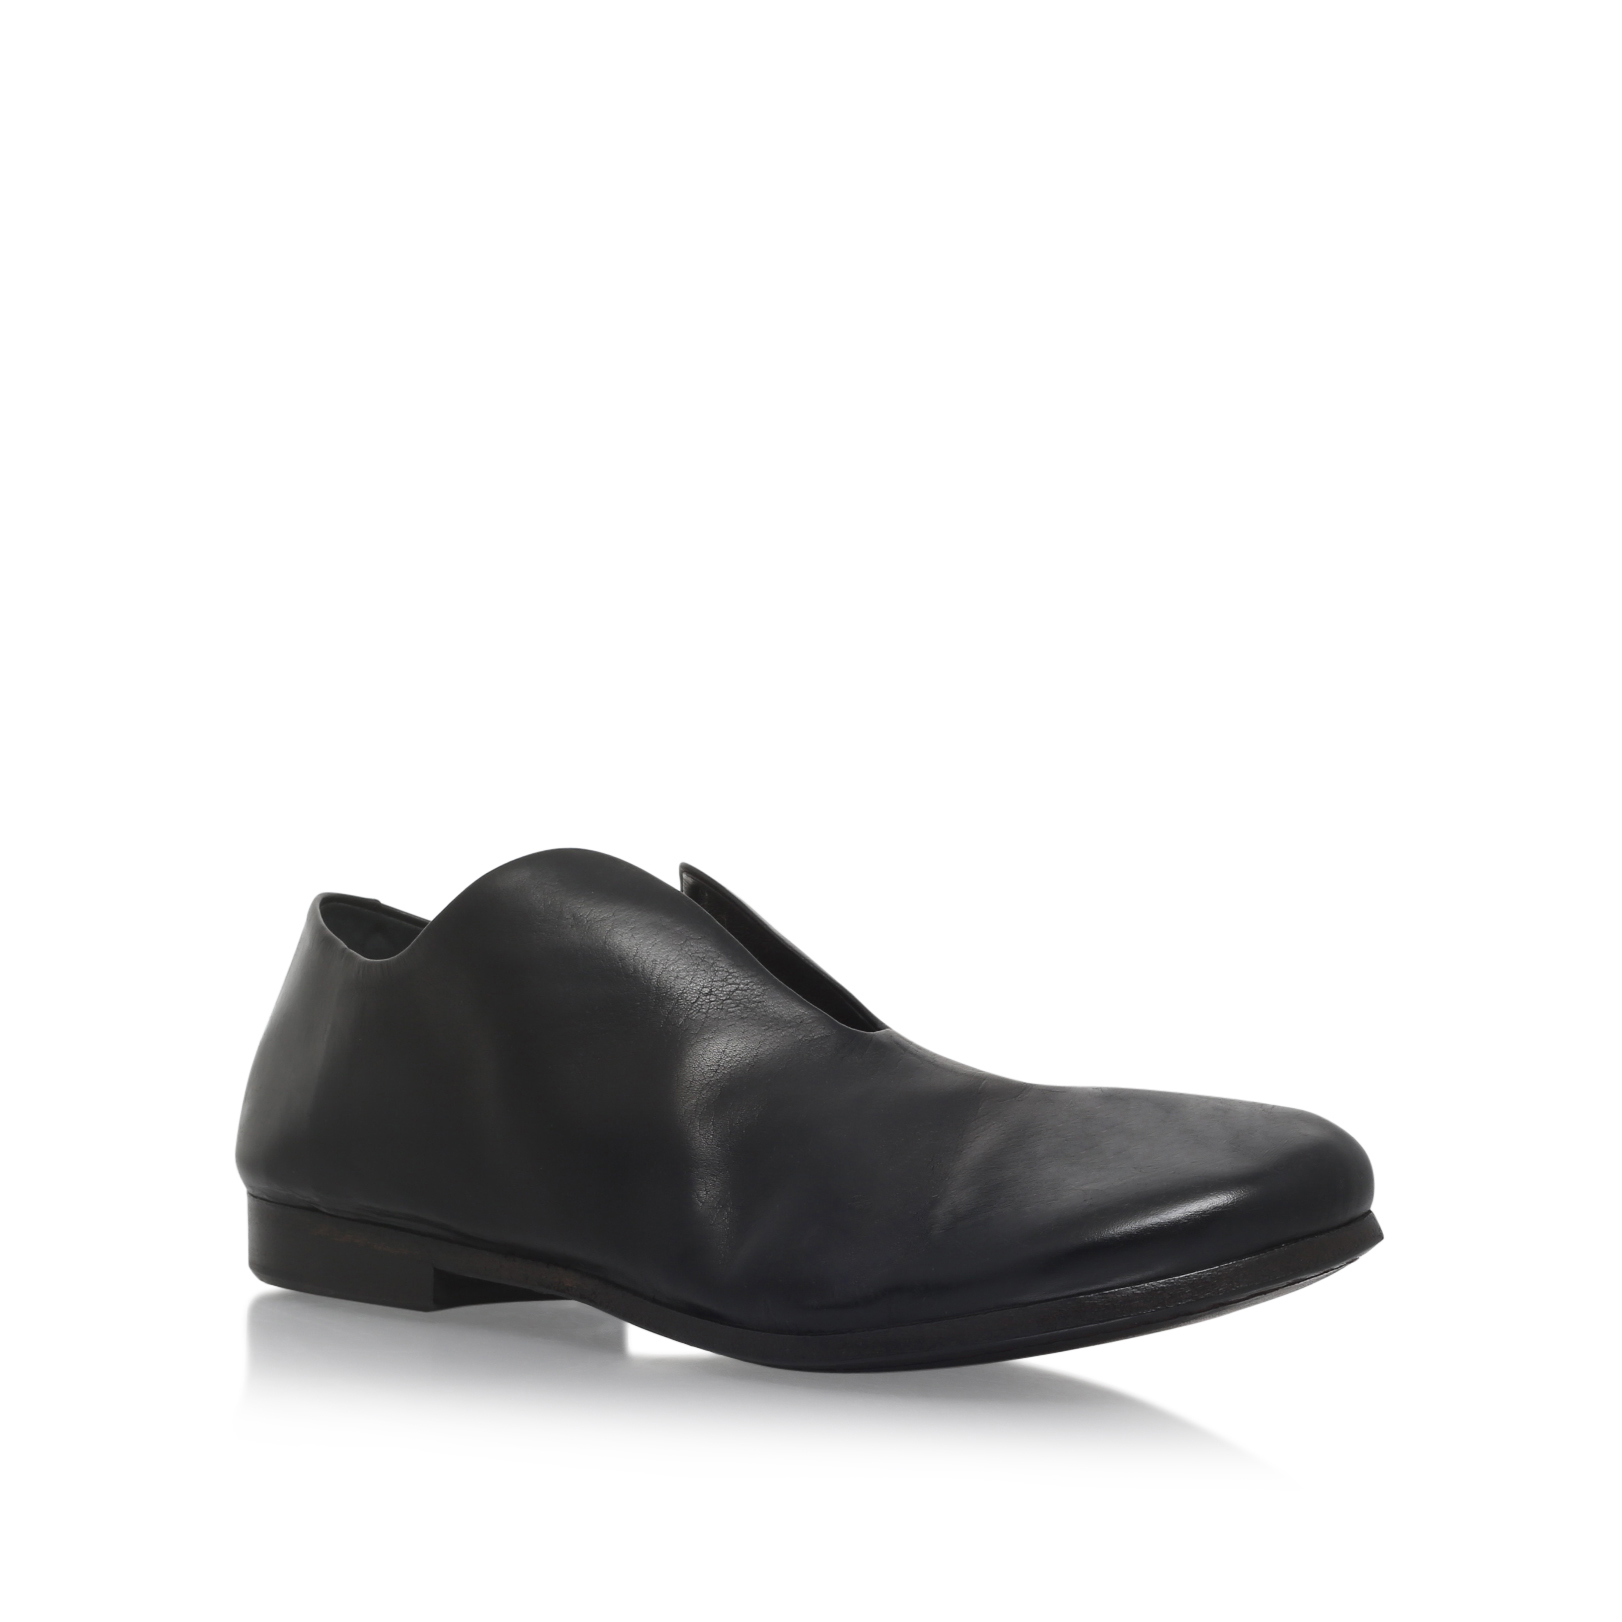 FUNGO LOAFER